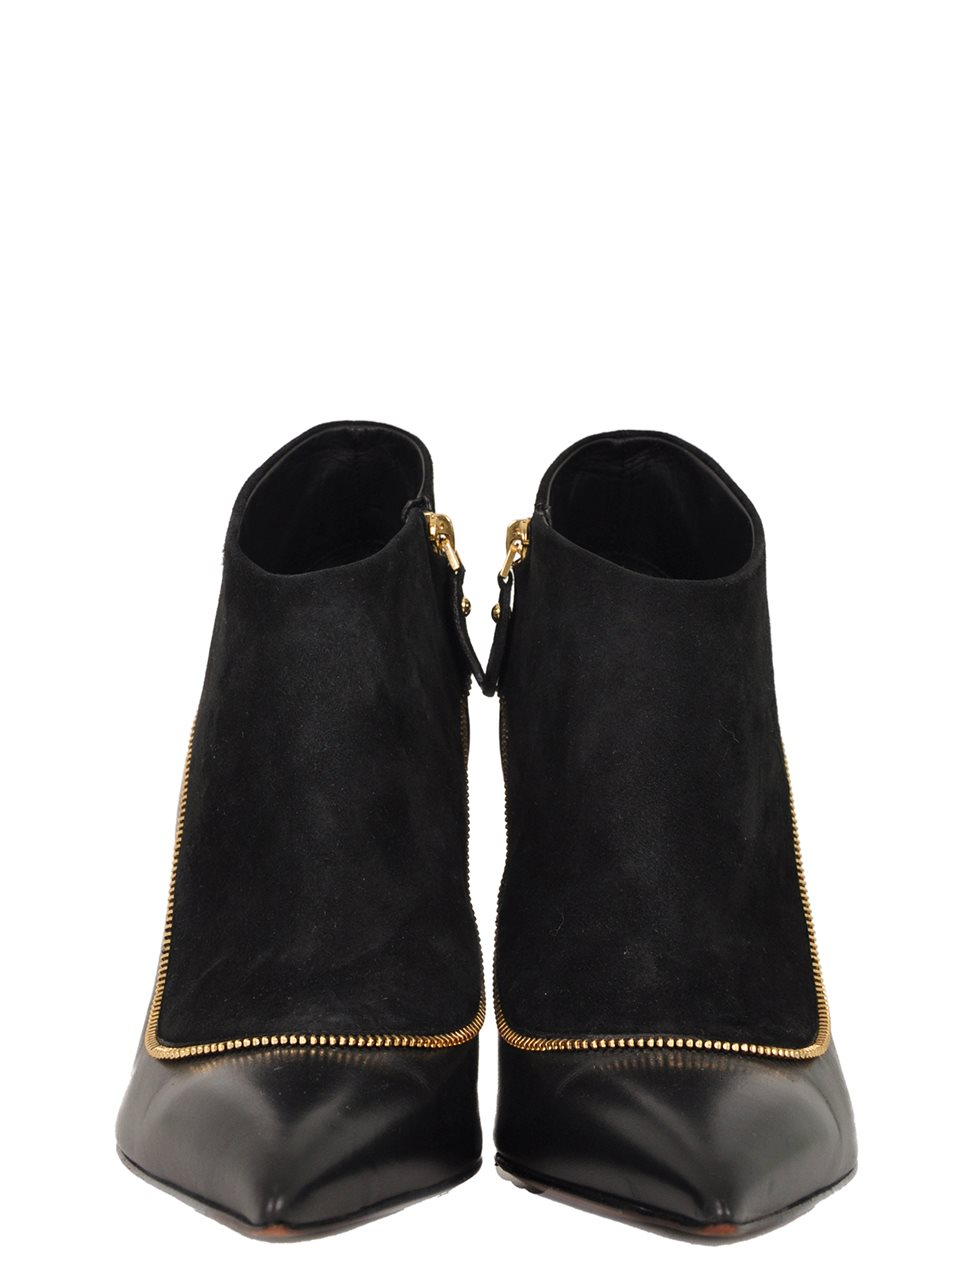 Louis Vuitton - Zip Trimmed Suede and Leather Bootie - Image 4 of 5